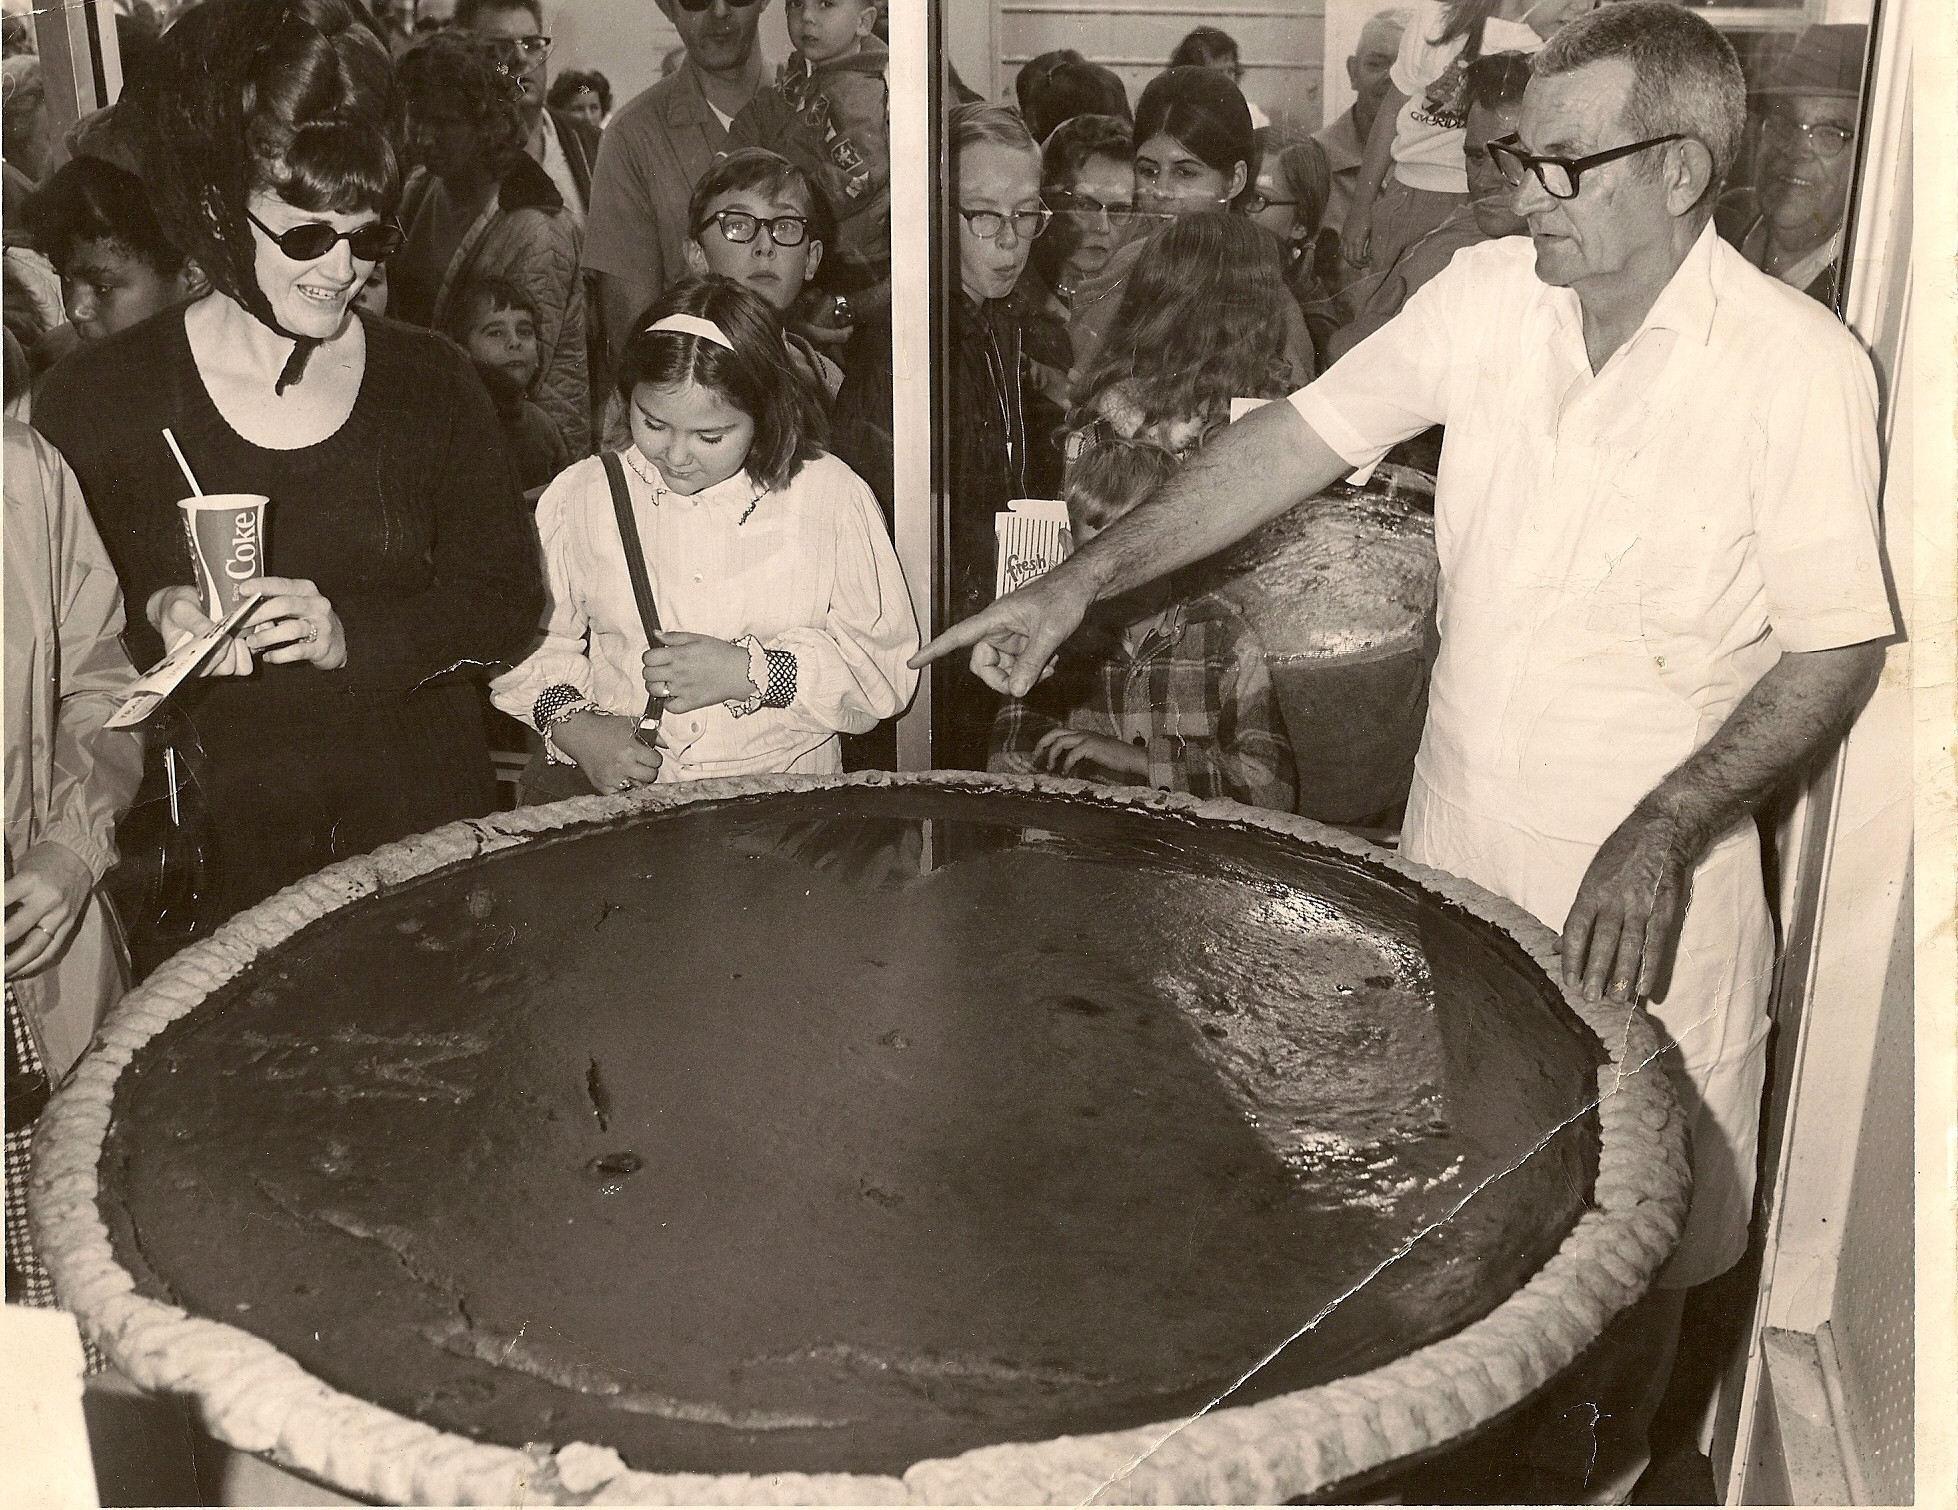 a crowd a lindsey's bakery admiring he giant pumpkin pie produced for the annual circleville pumpkin show